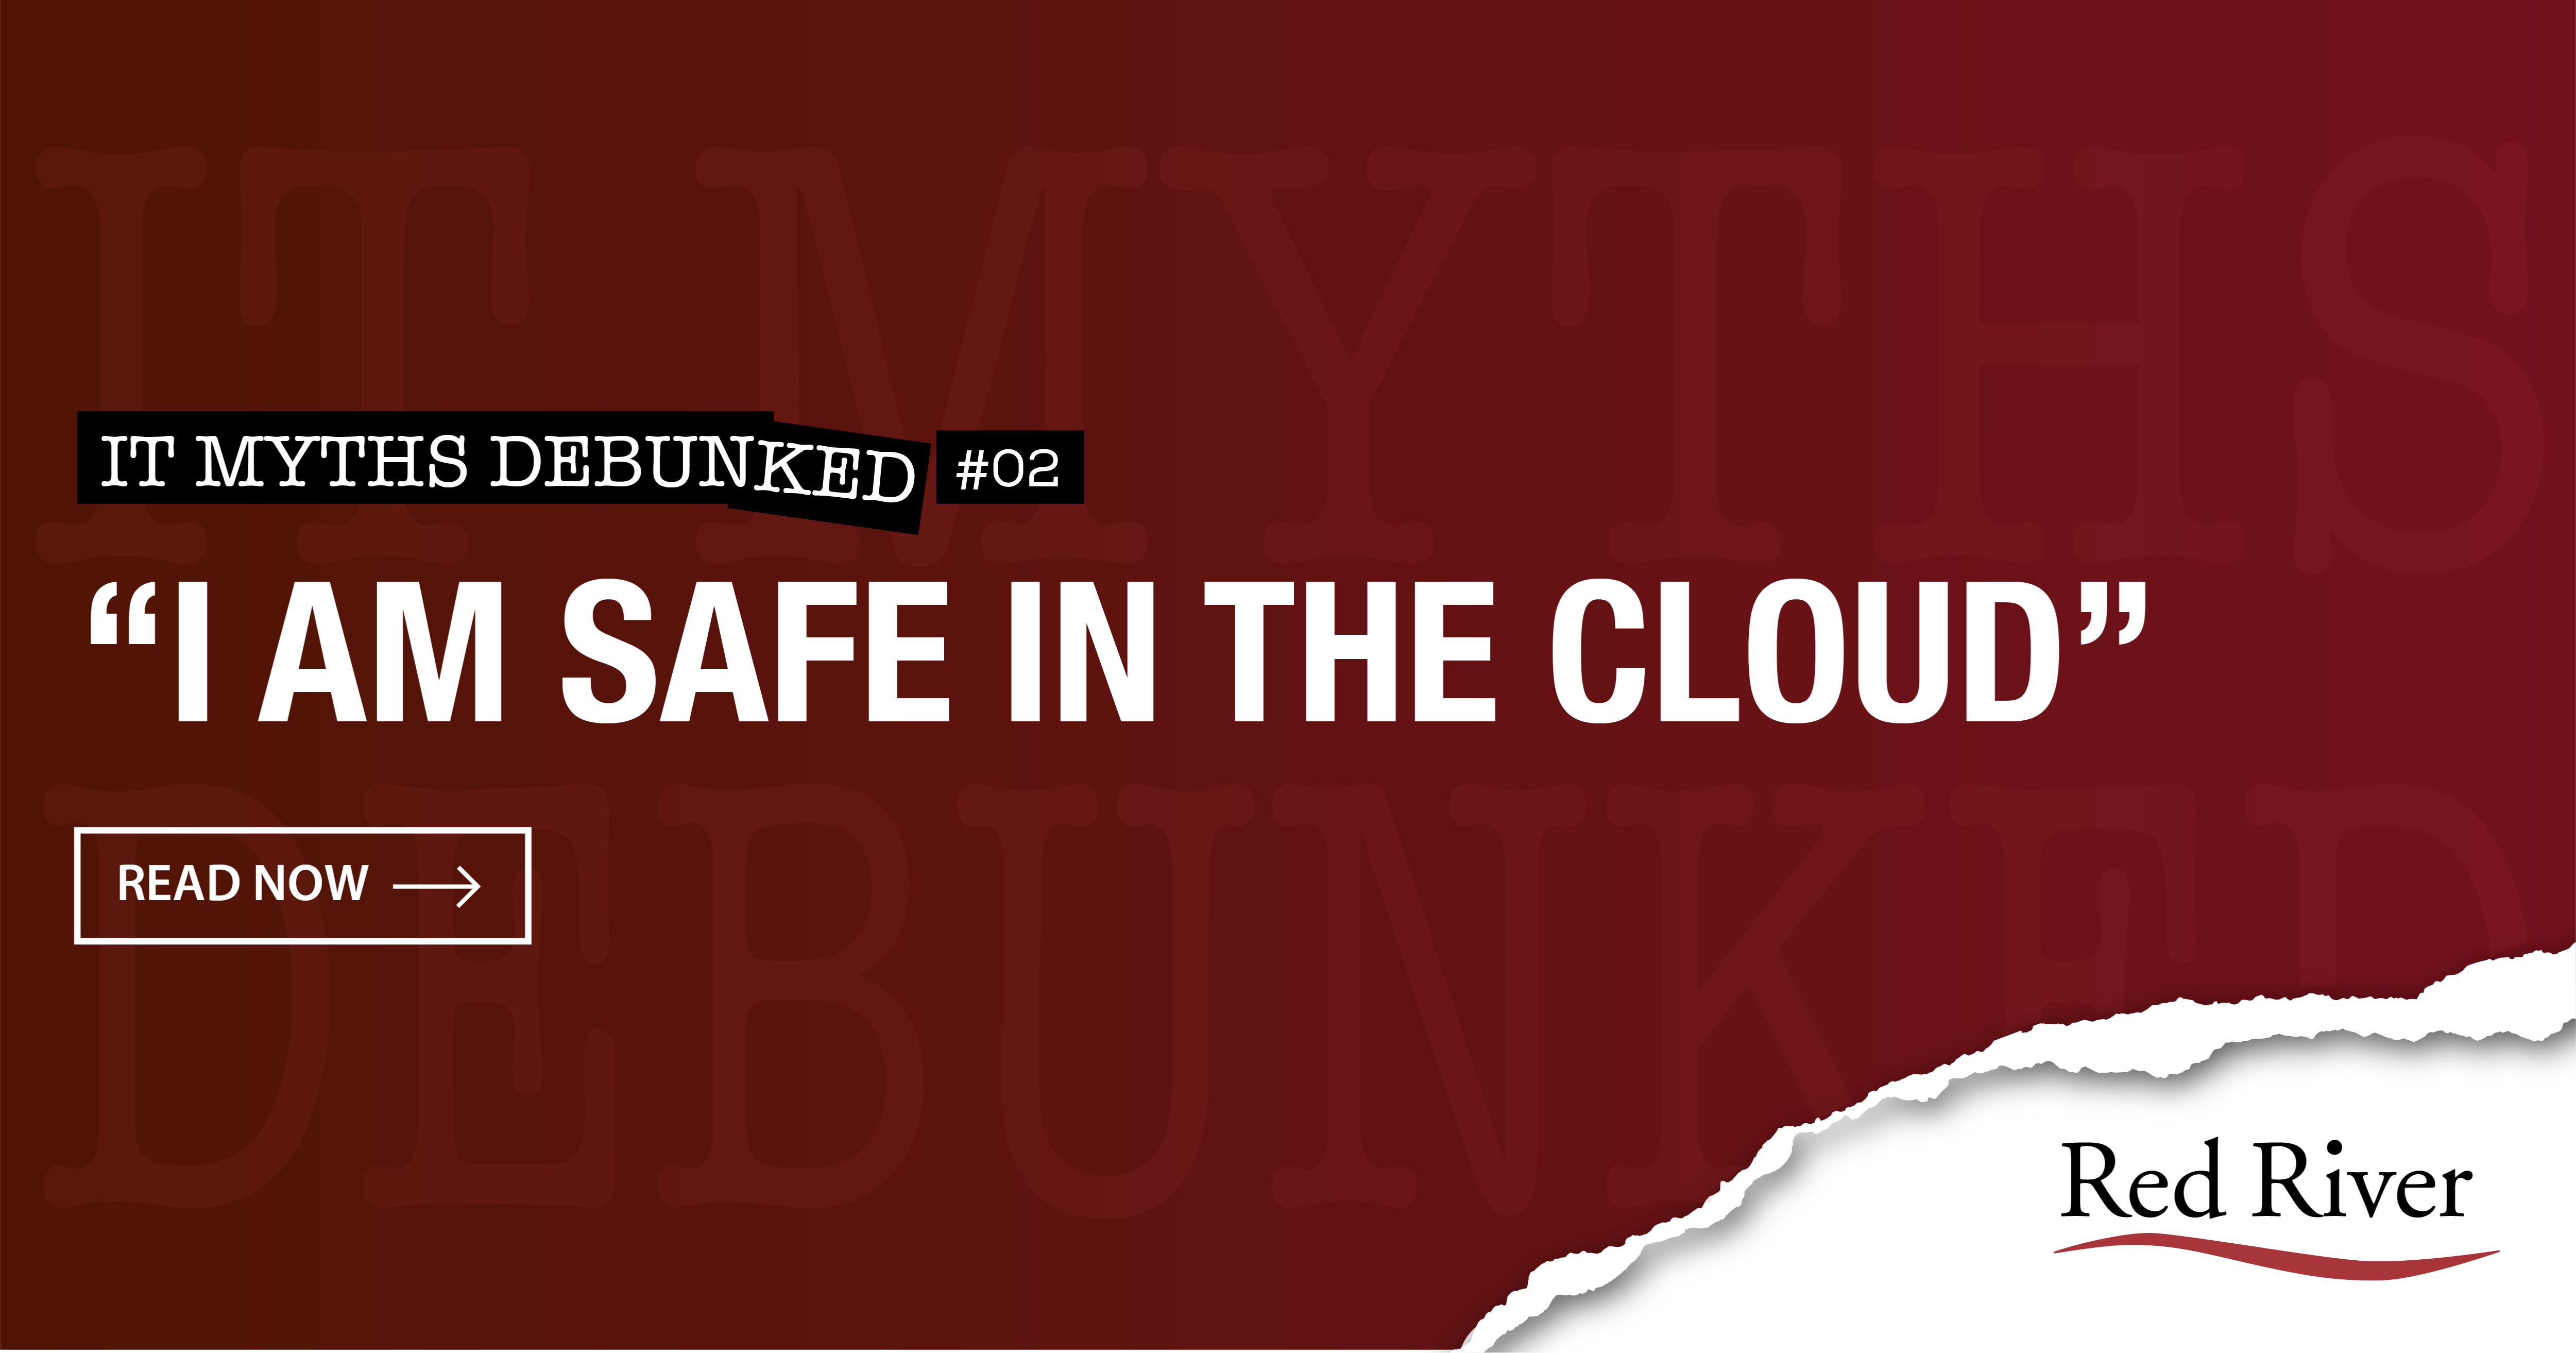 """I am safe in the cloud."" Debunked"